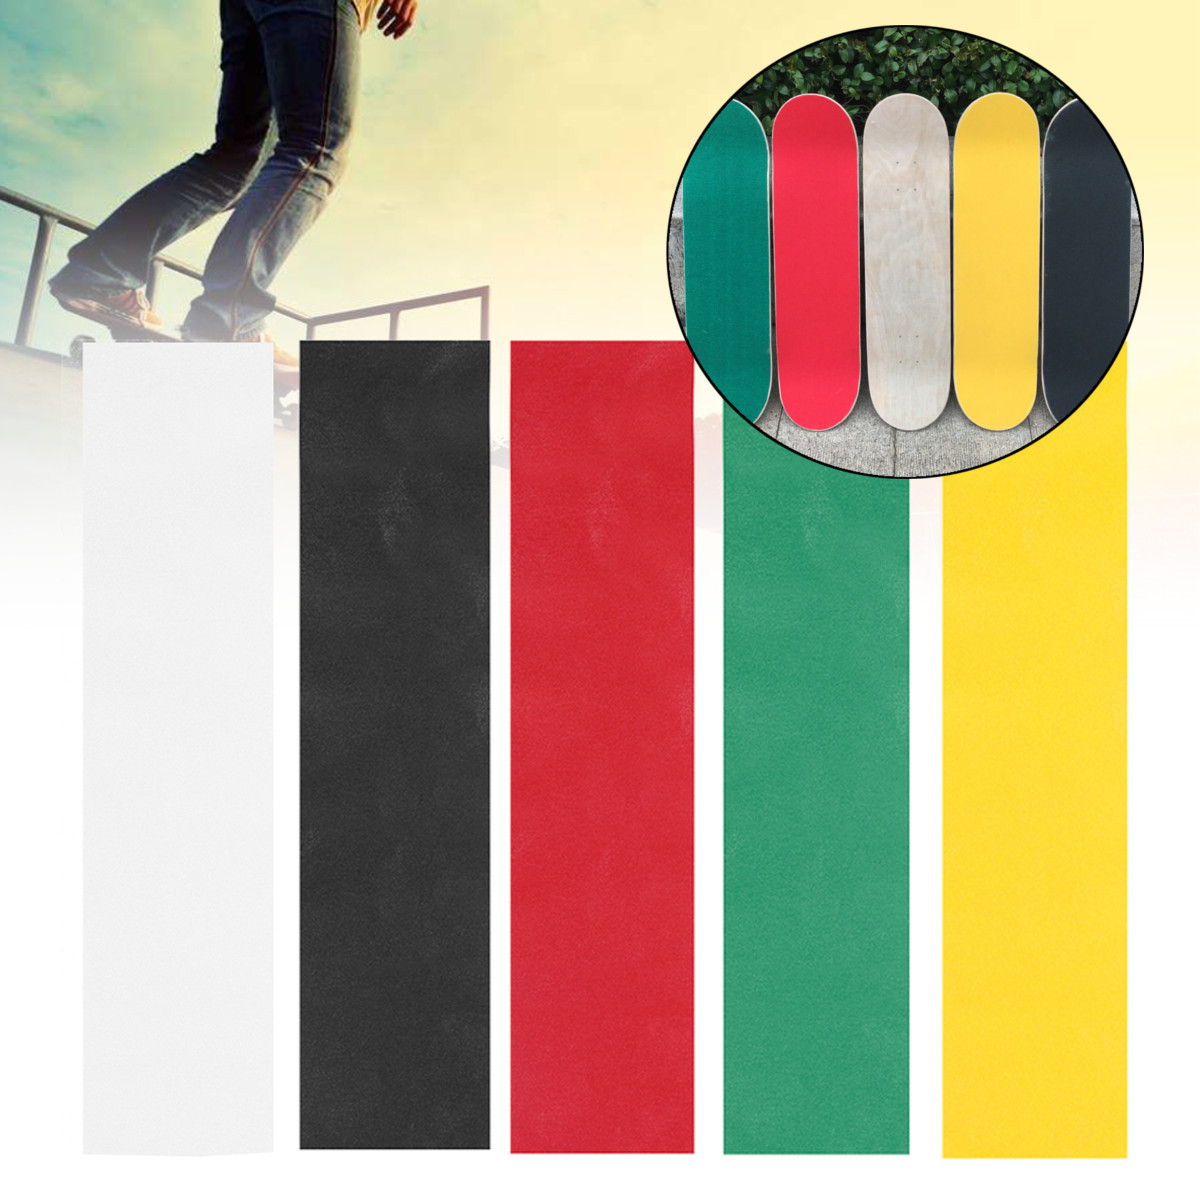 Longboarding Skating-Board Sticker Professional Skateboard Deck Sandpaper Grip Tape Griptape Skating Board Sticker